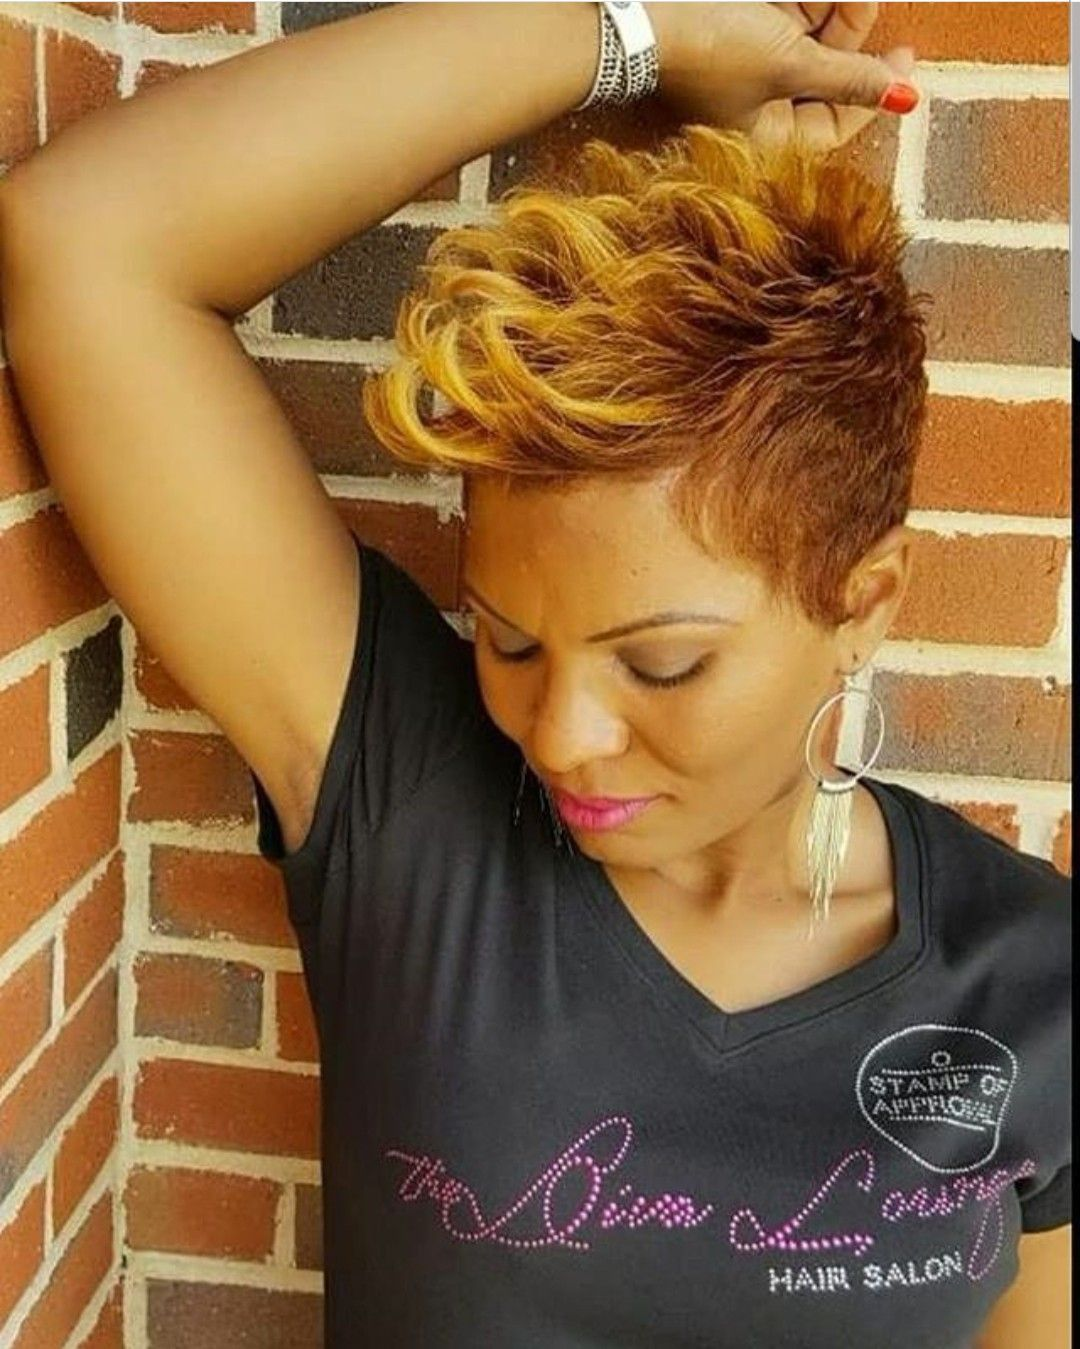 Salon Hairstyles For Short Hair The Diva Lounge Hair Salon Larnetta Moncrief Montgomery Alabama